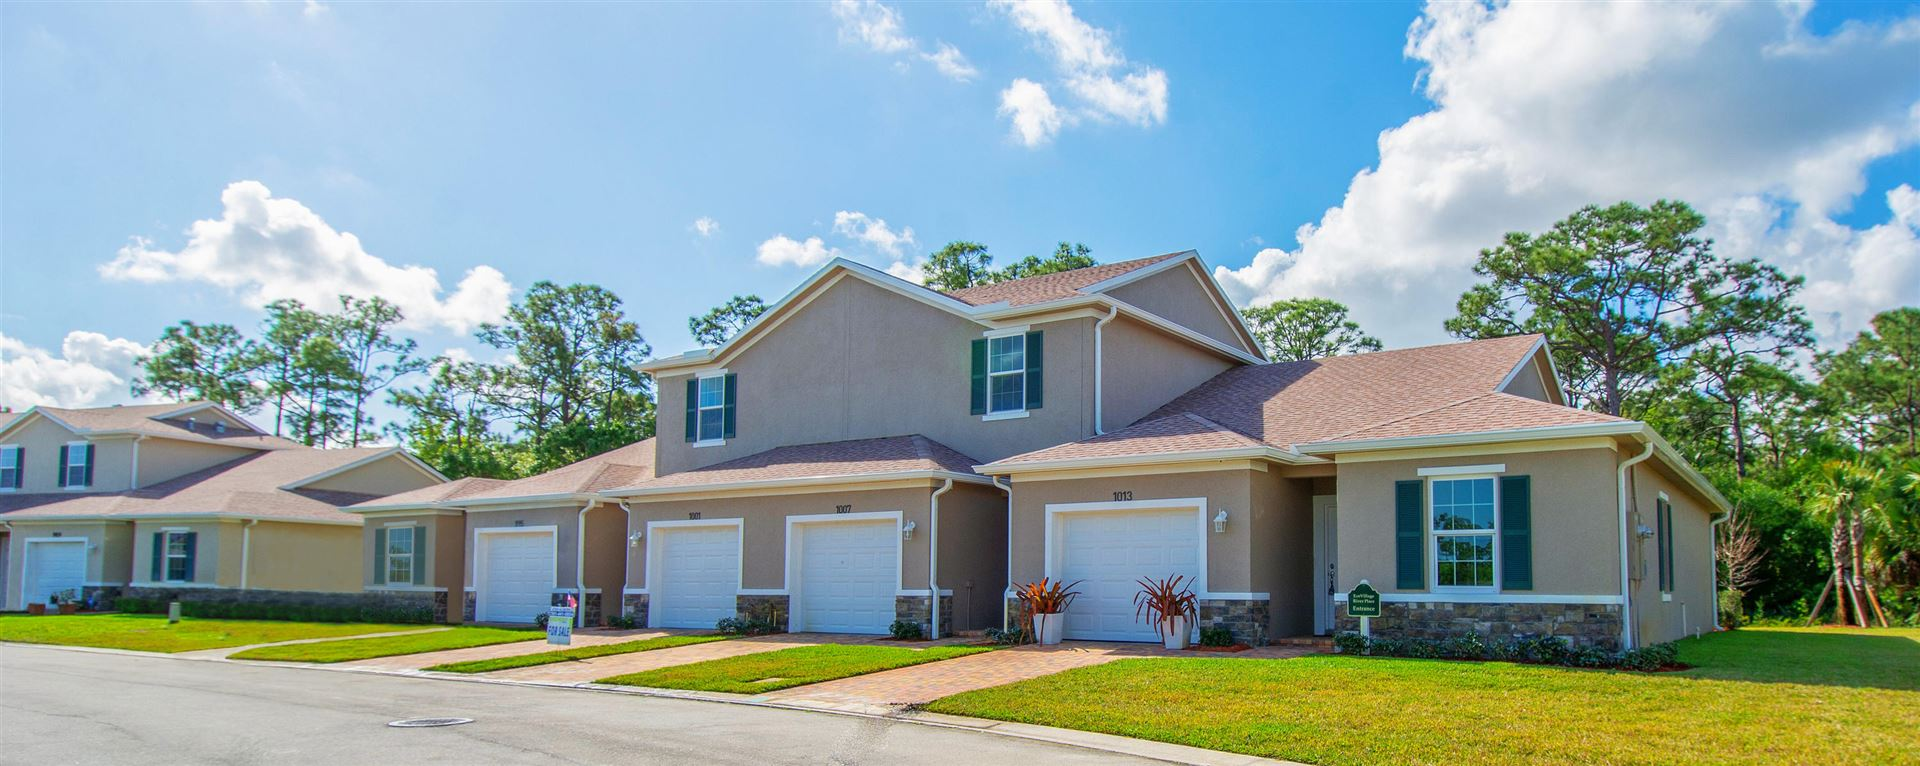 962 NE Trailside Run, Port Saint Lucie, FL 34983 - #: RX-10682811